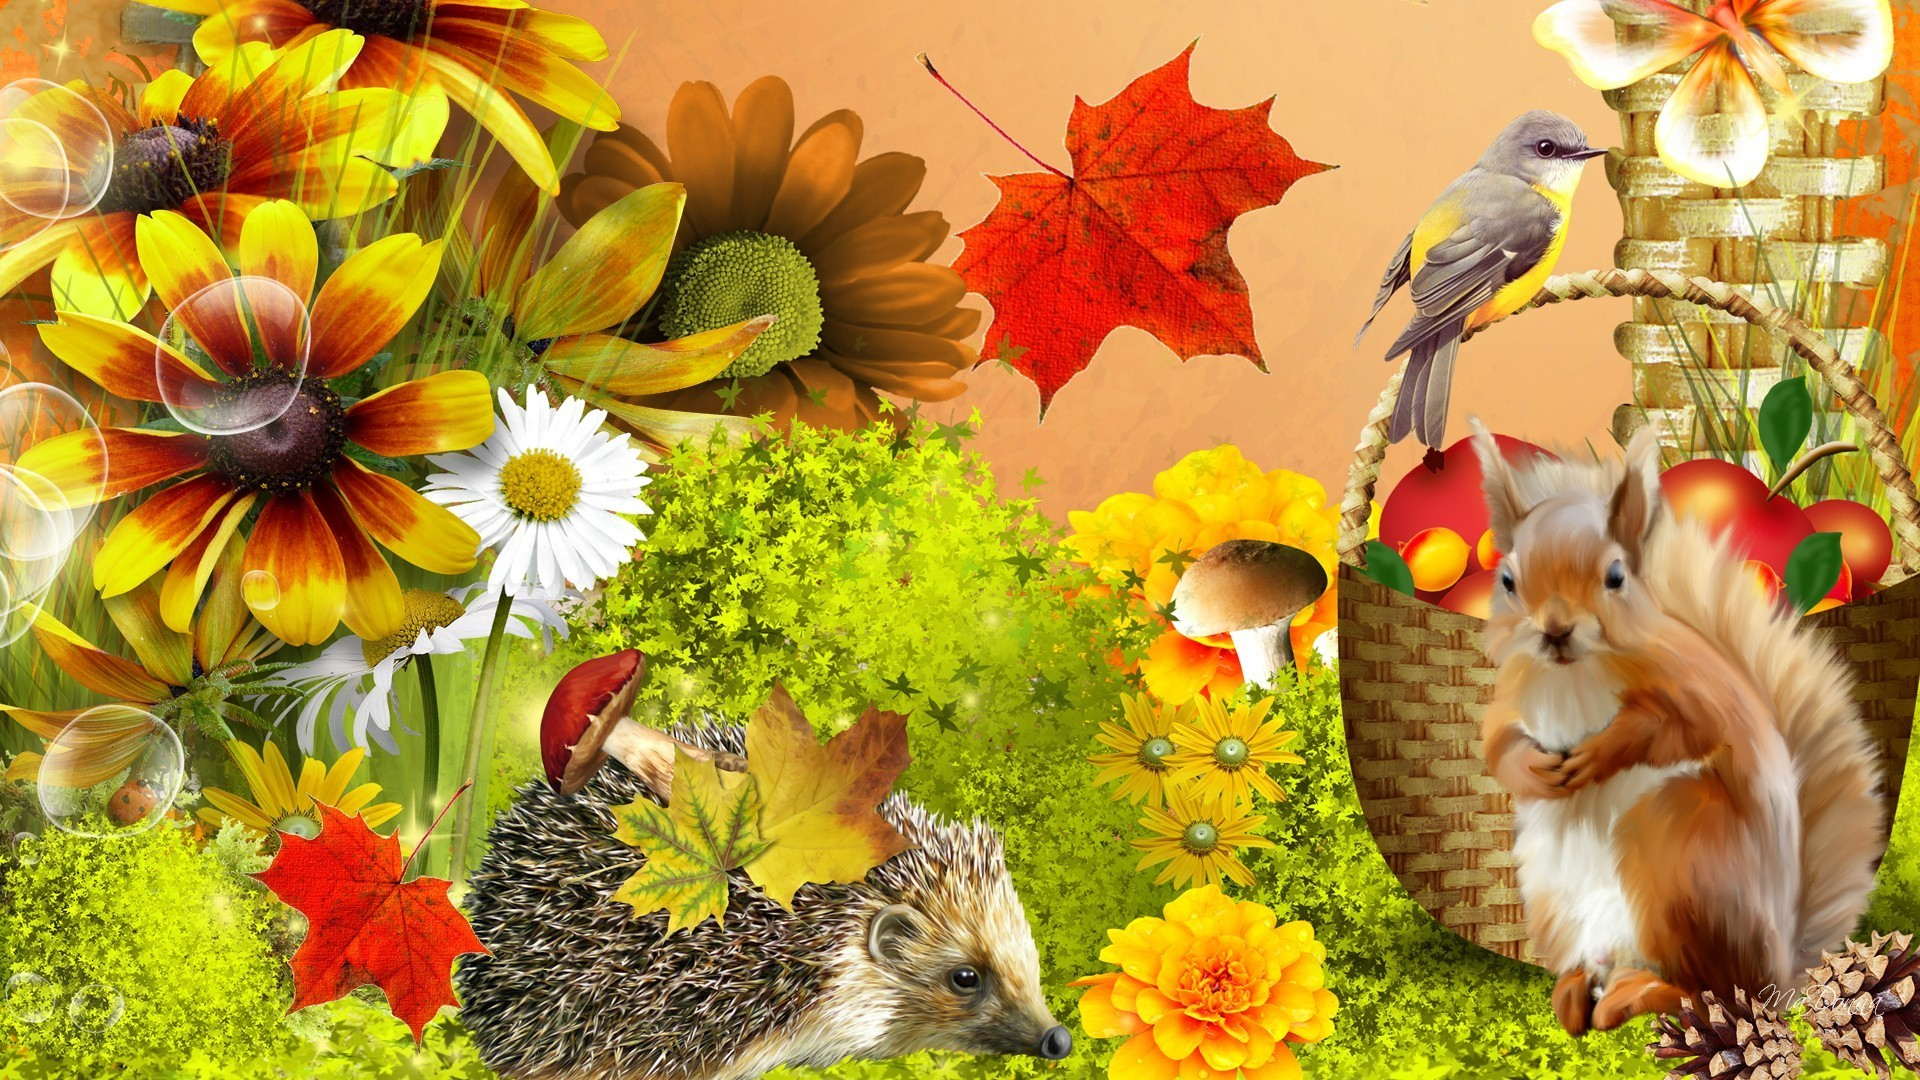 Ivy Tag – Autumn Flowers Fruit Squirrel Ivy Mushrooms Fall Bird Apples  Porcupine Fleurs Nuts Whimsical